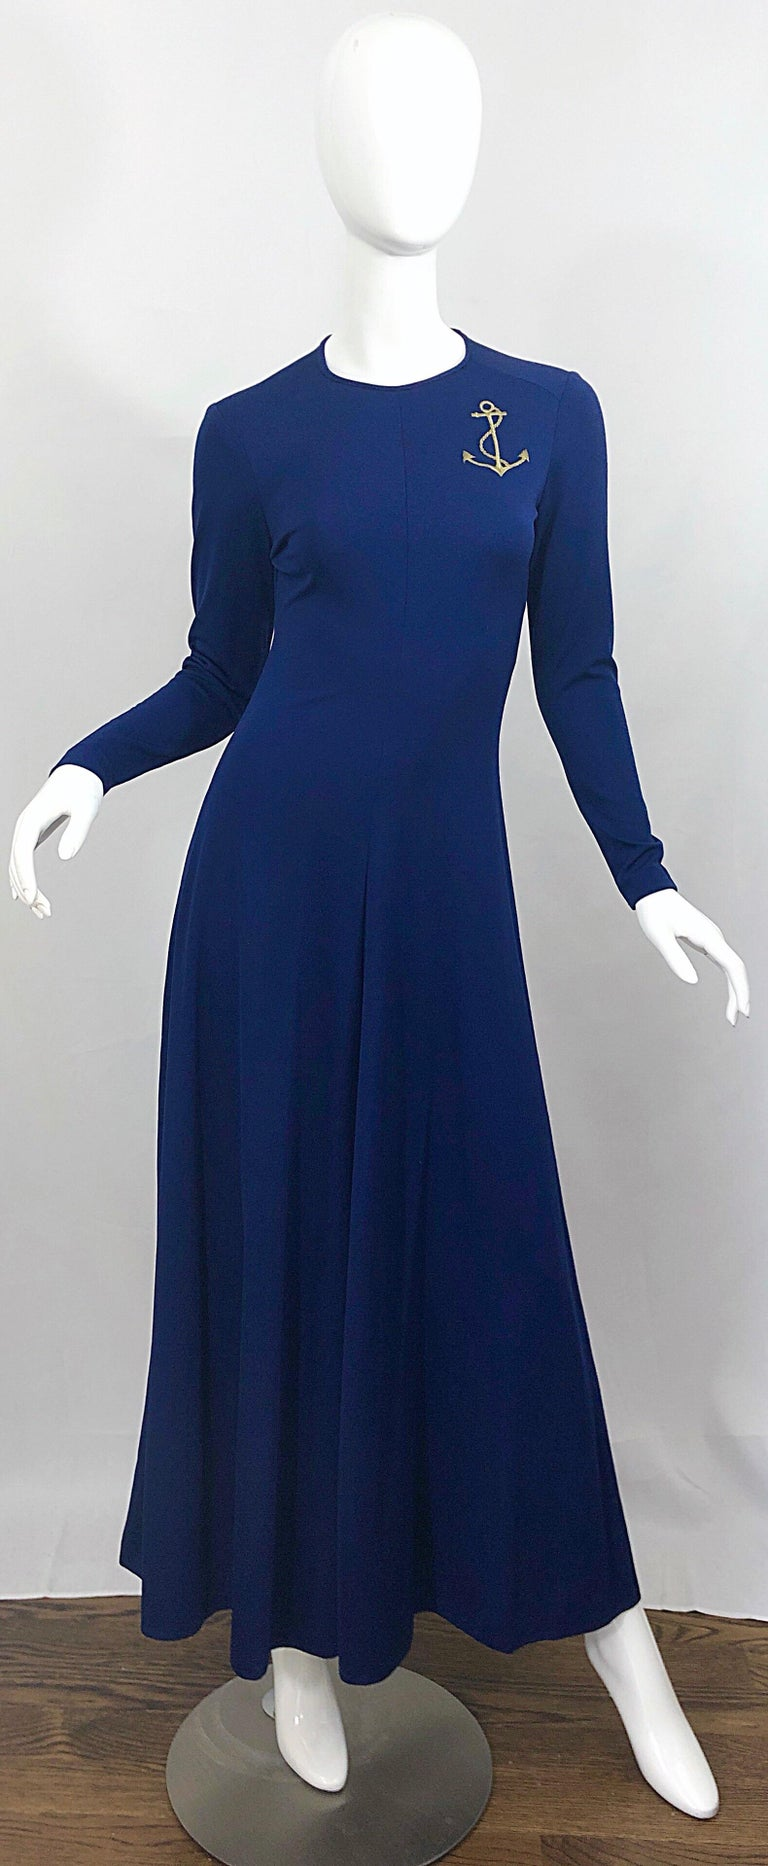 Amazing vintage 70s navy blue + gold anchor patch long sleeve jersey maxi dress! Perfect navy blue color matches anything, and is great all year. Gold anchor patch above left breast. Sleek tailored fit, with a forgiving fuller skirt. Hidden zipper